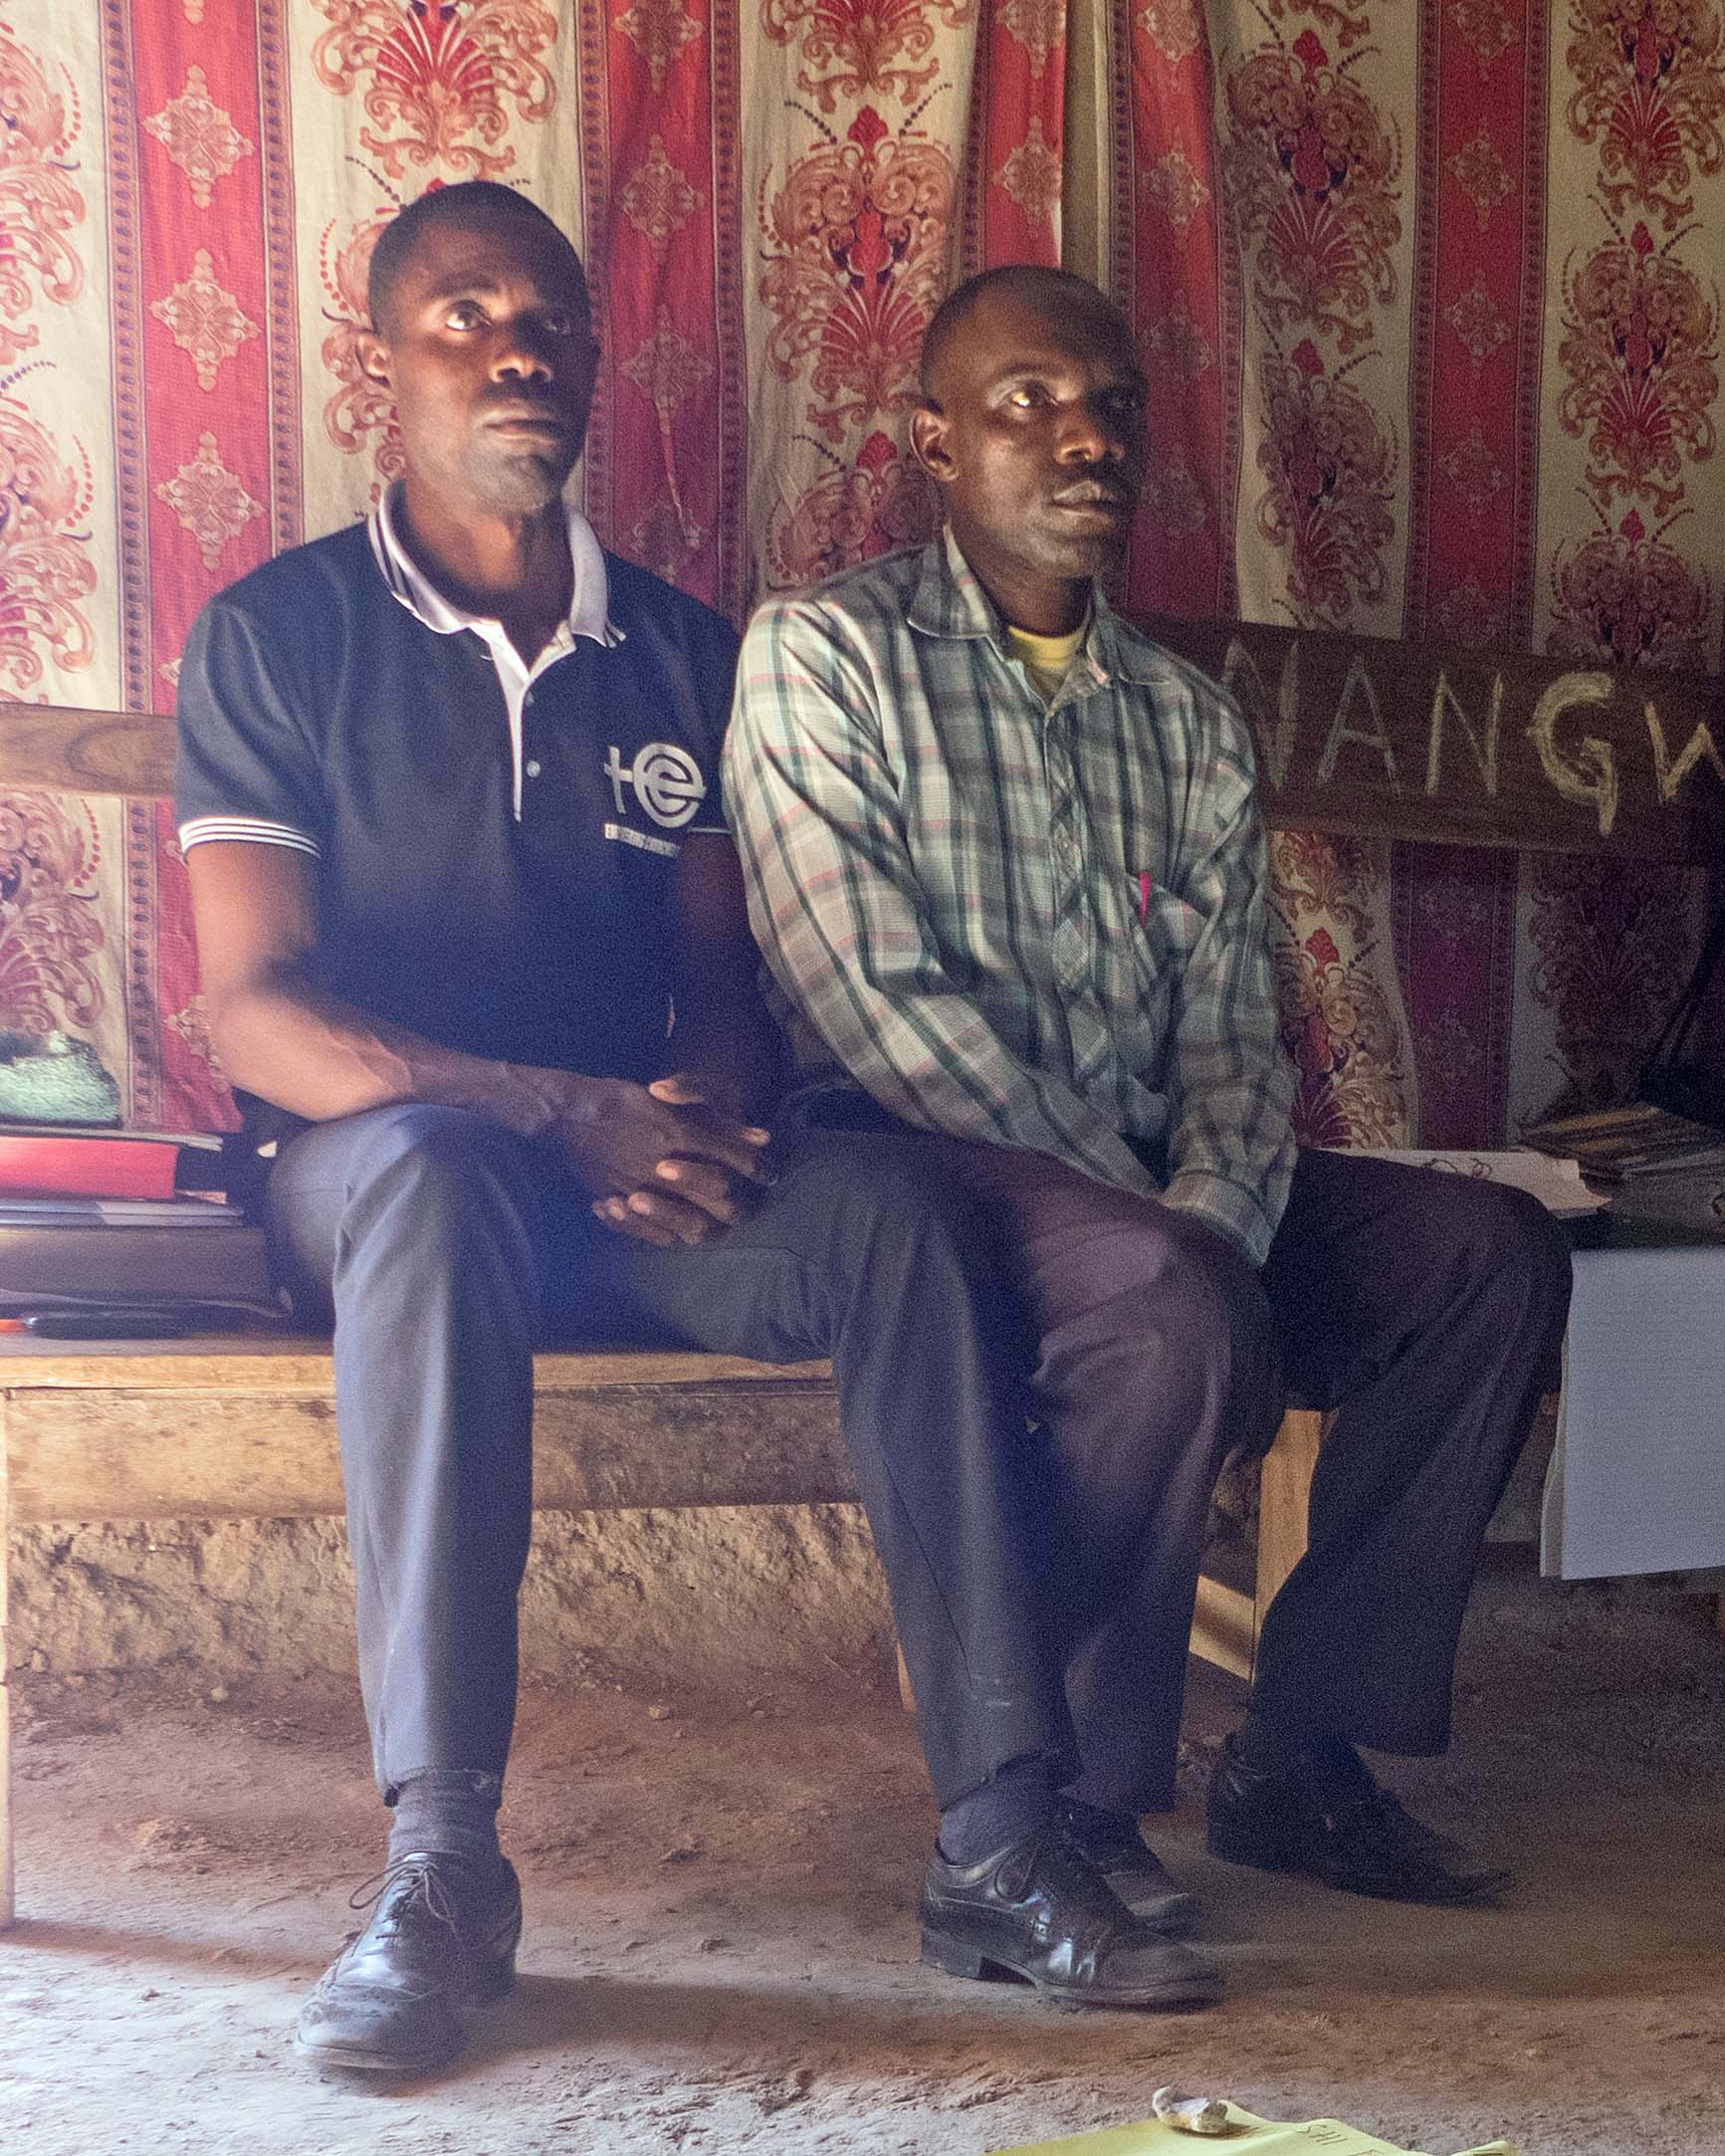 Pastors Titus and Martin organized the training. Pastor Martin's story broke our hearts.